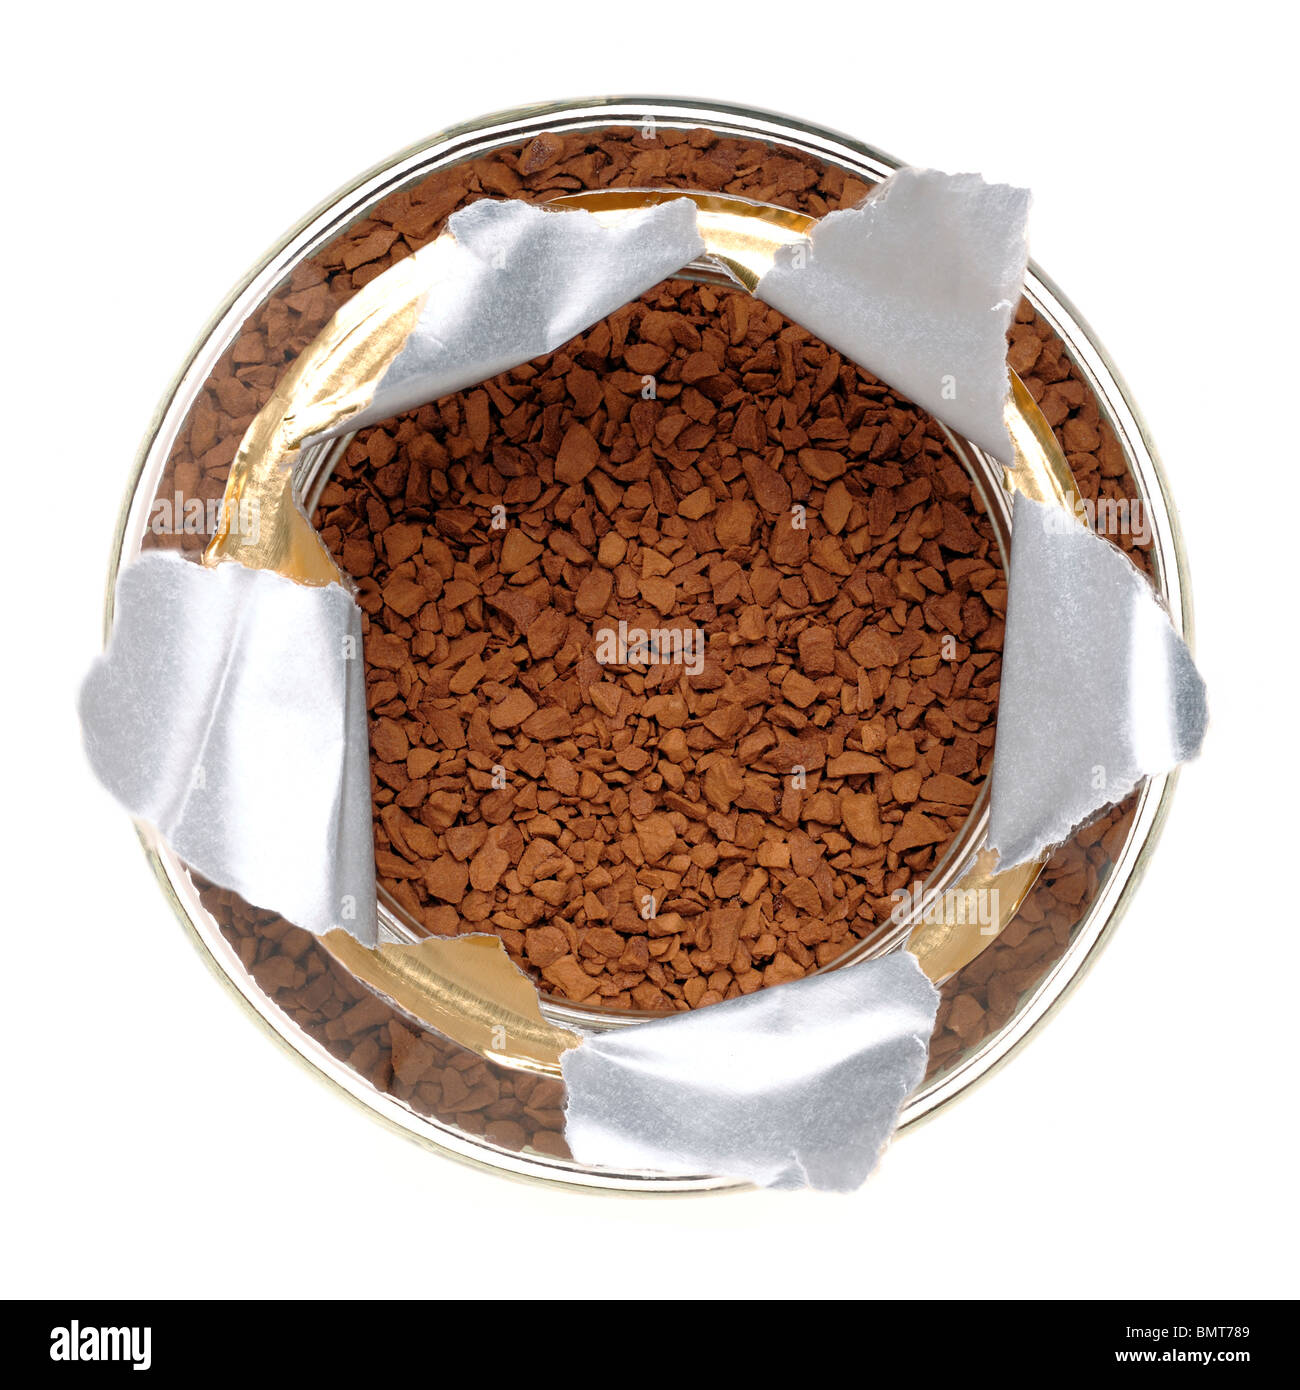 Jar of instant coffee - Stock Image